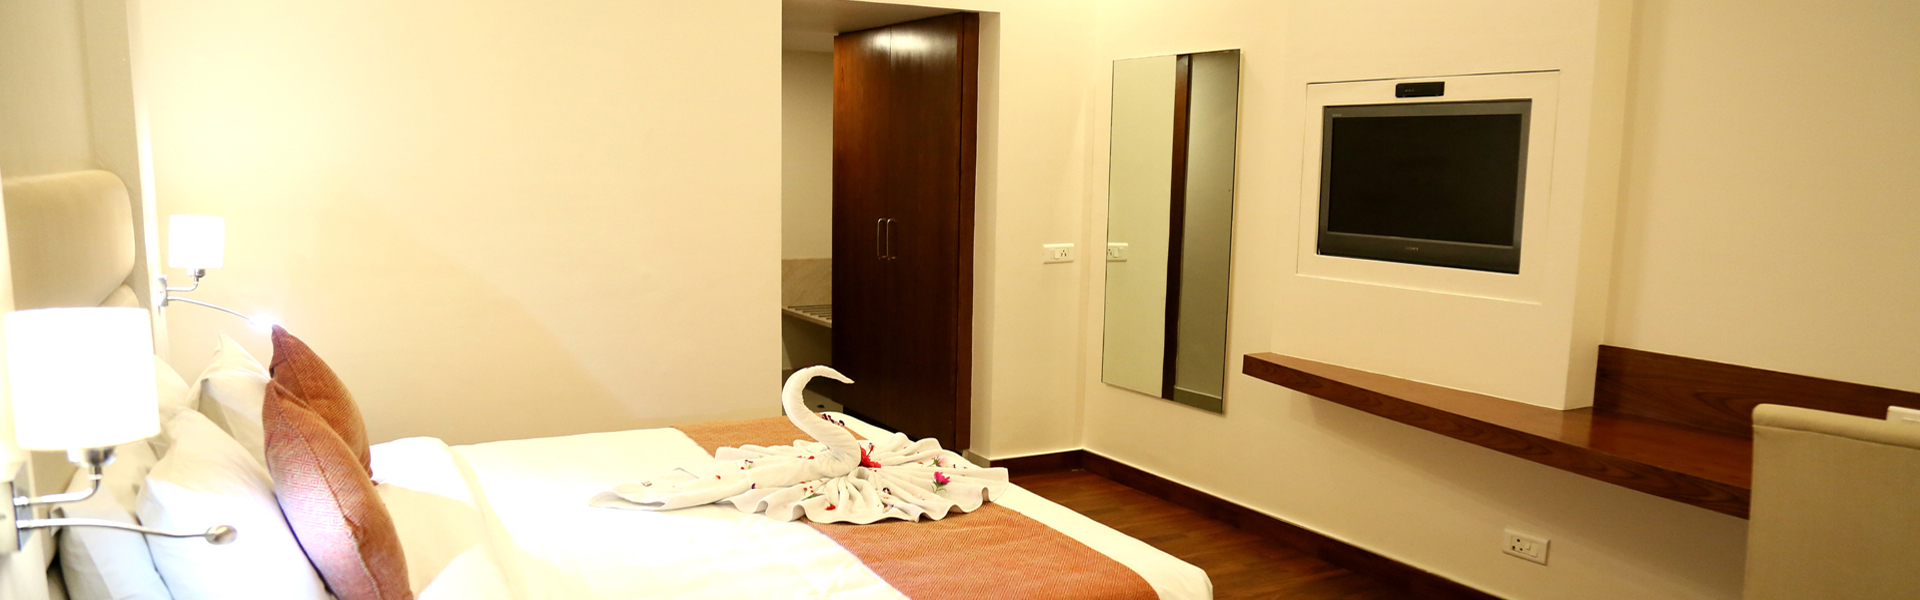 Executive Hotel Rooms in Dehradun at MJ Residency